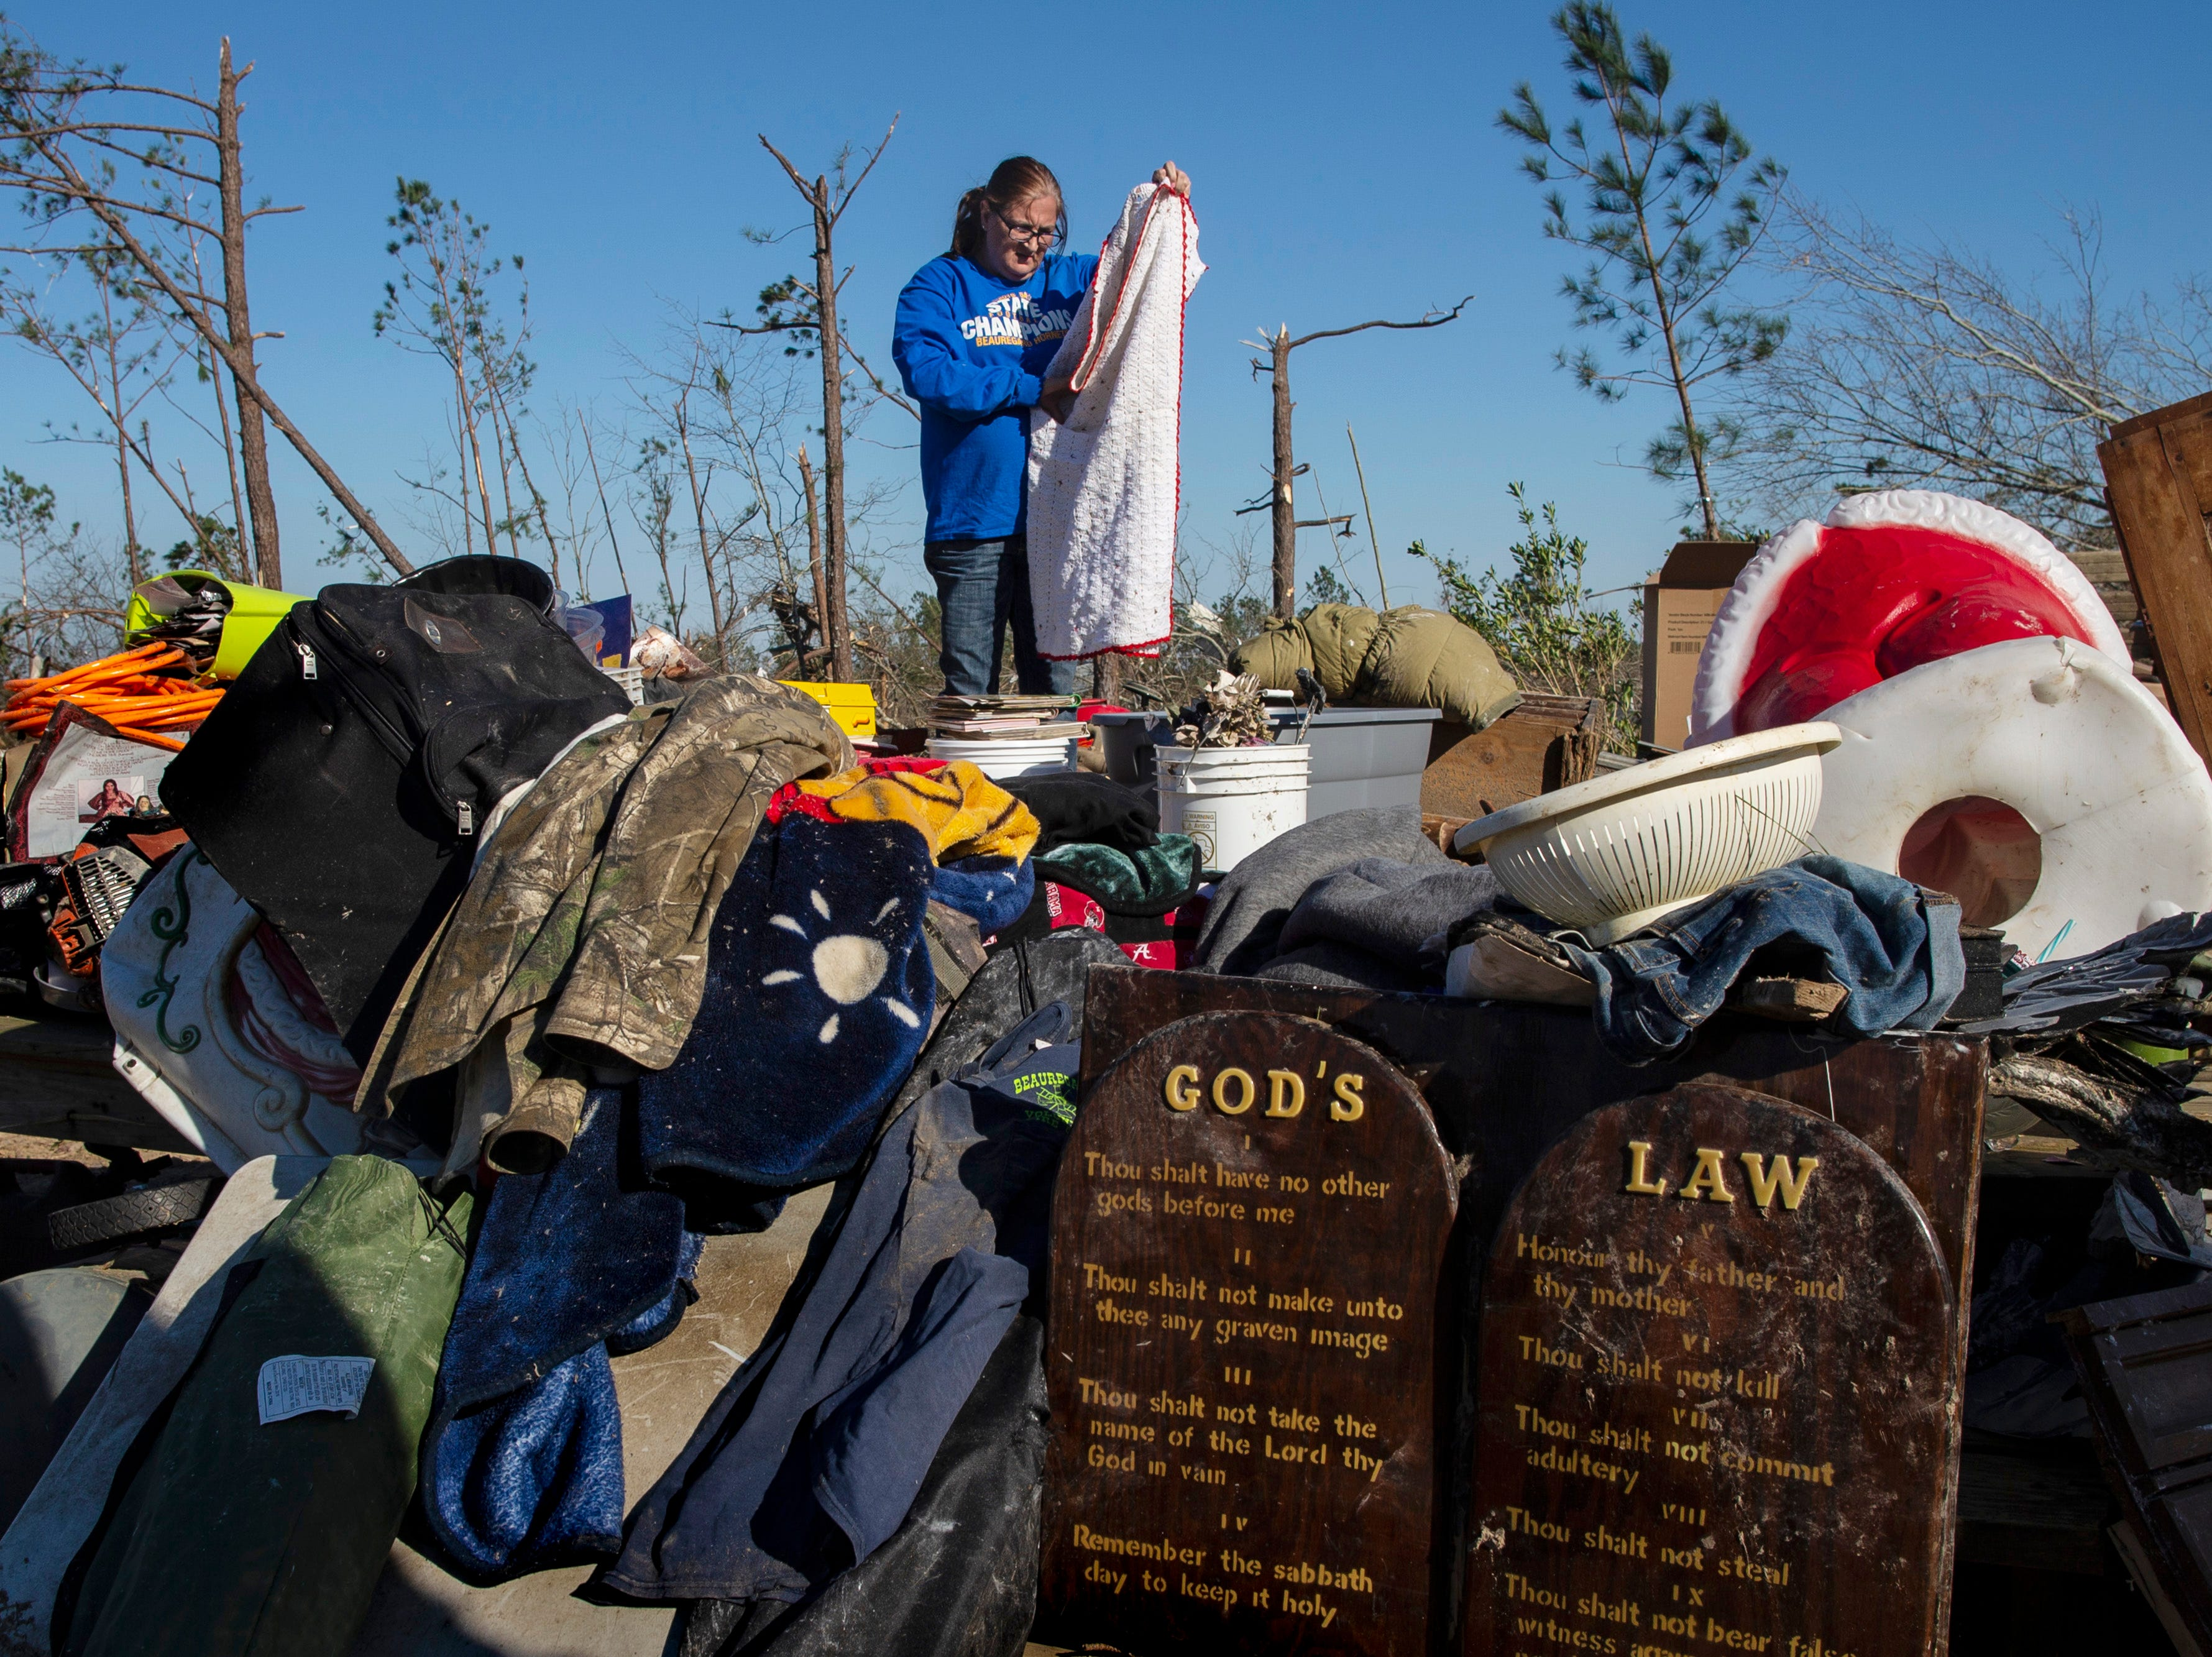 """Misha Cooley helps her sister-in-law, Susanne Polk, search for items after her trailer was destroyed in Beauregard, Ala. on March 6, 2019. """"God's law survived, just like his word survived,"""" Polk said. """"I just praise that he kept me safe."""""""